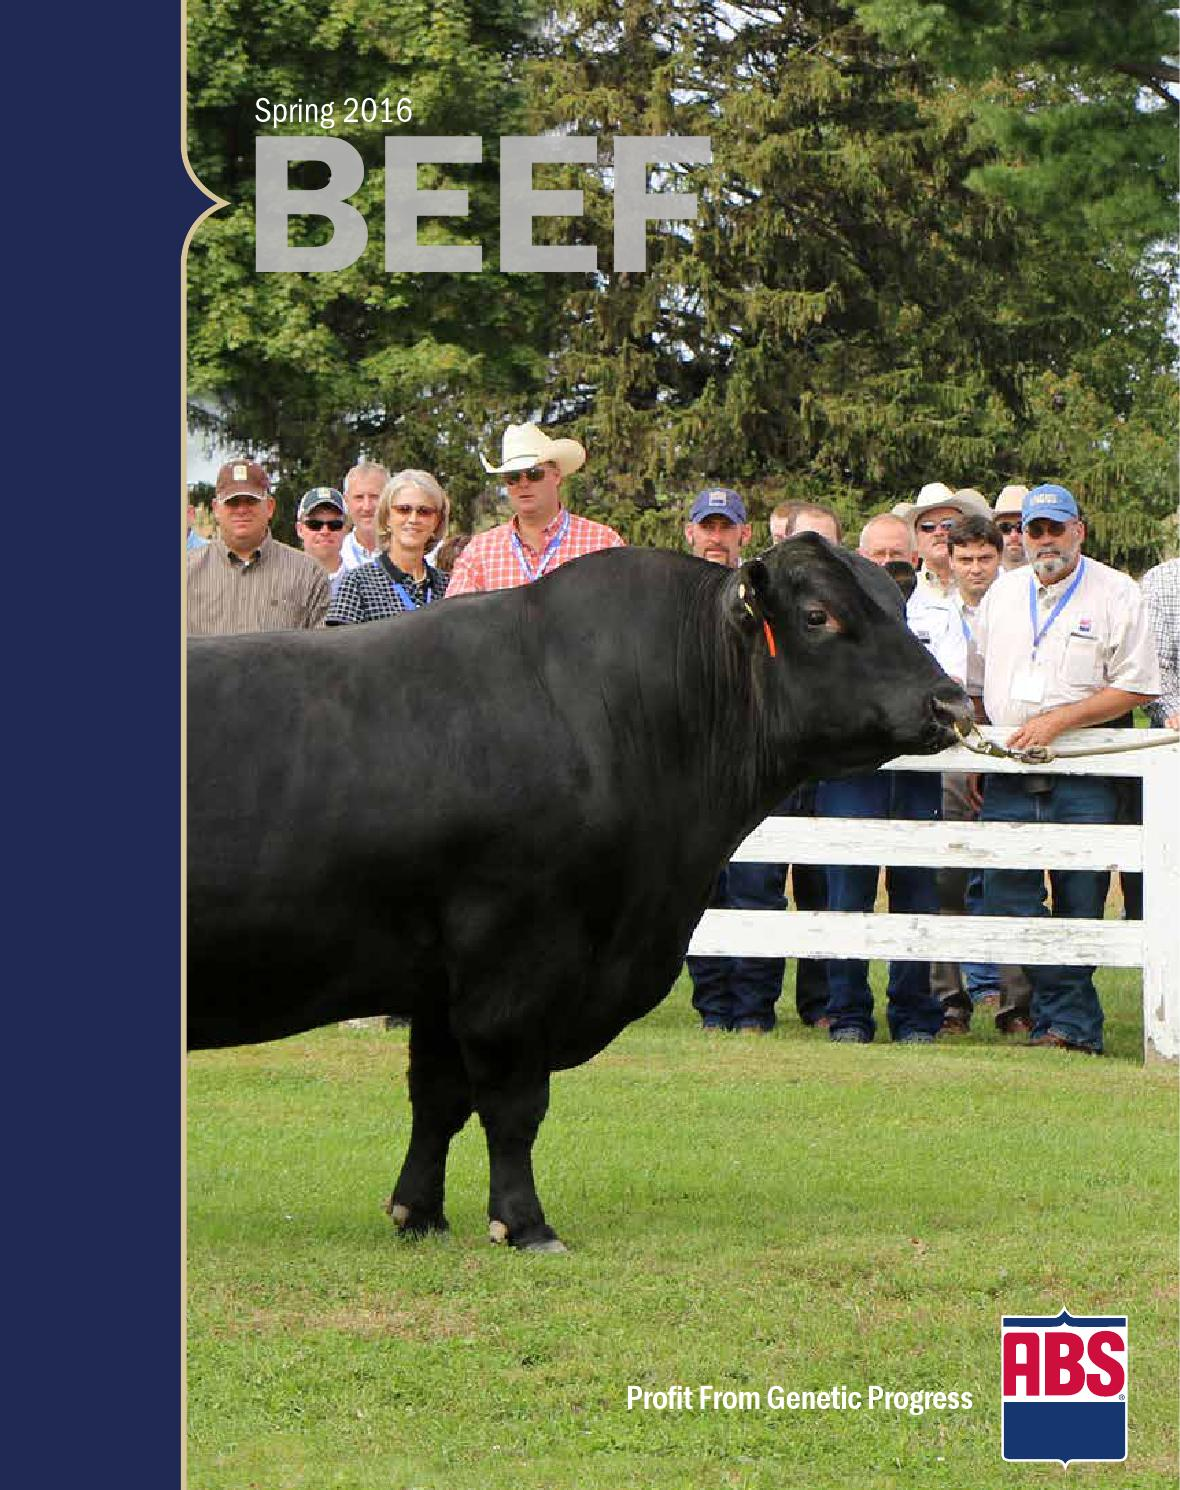 Spring 2016 Beef Sire Directory by ABS Global, Inc  - issuu